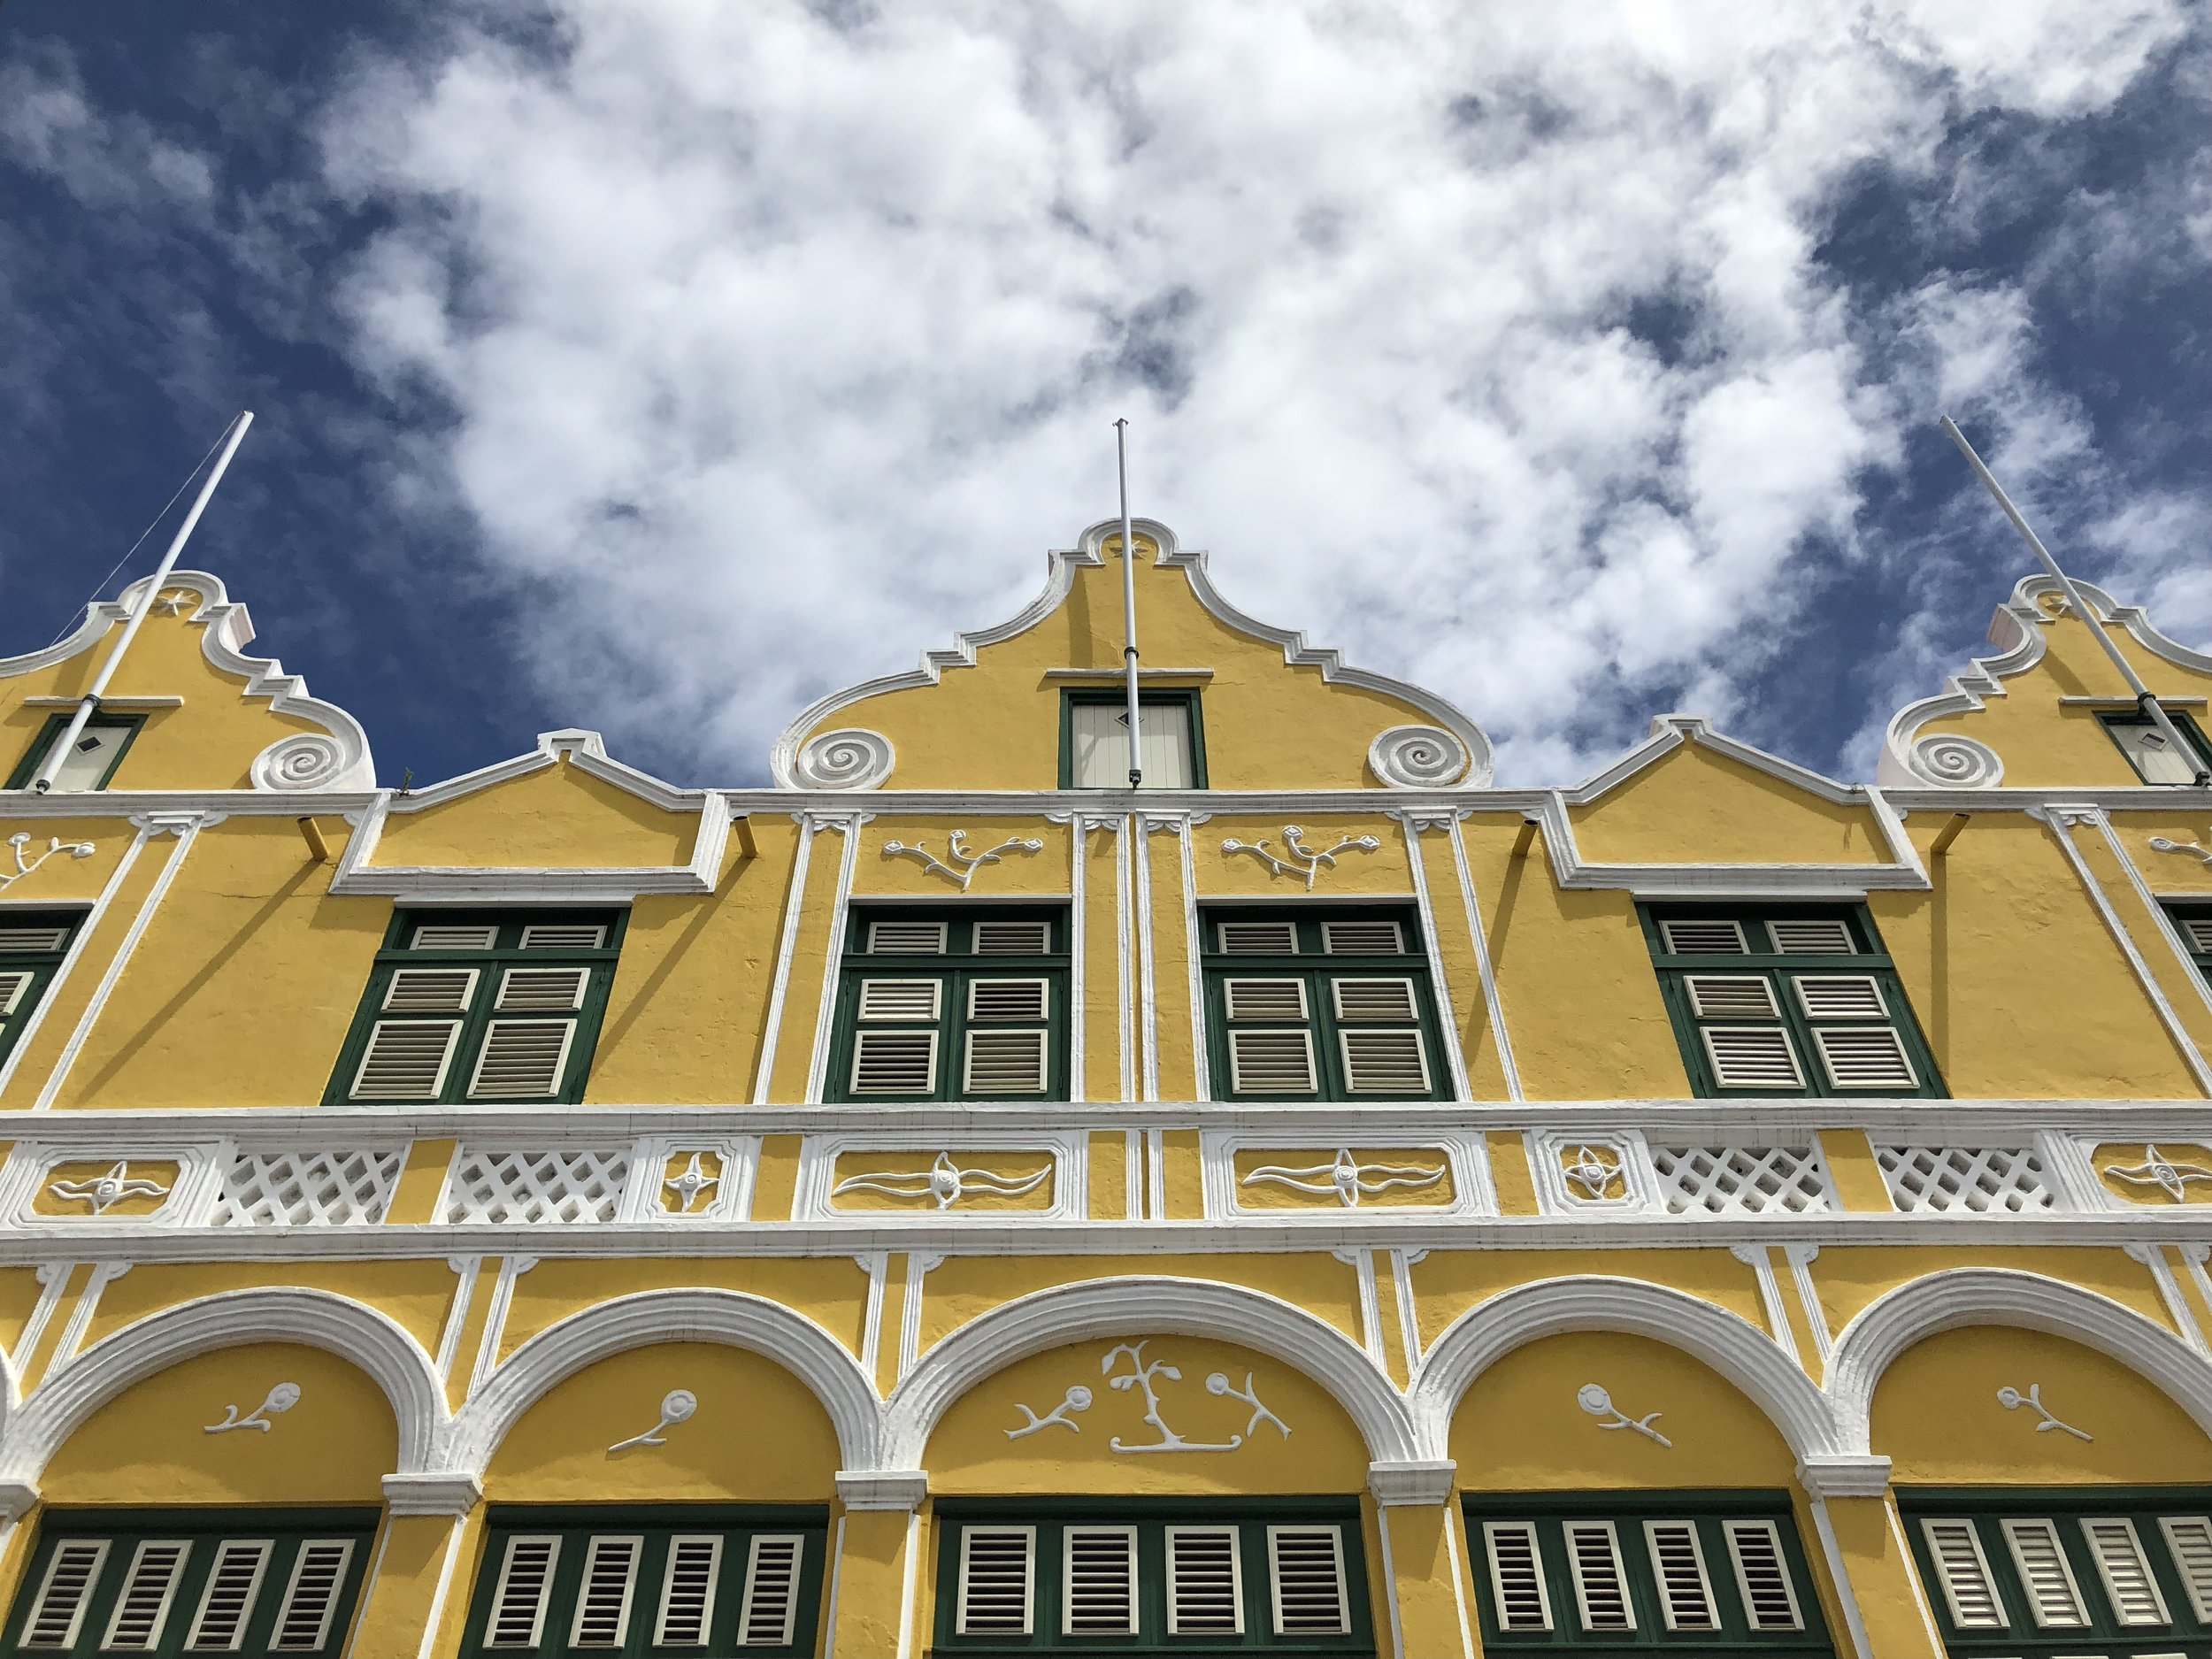 curacao-willemstad-yellow-building.jpg